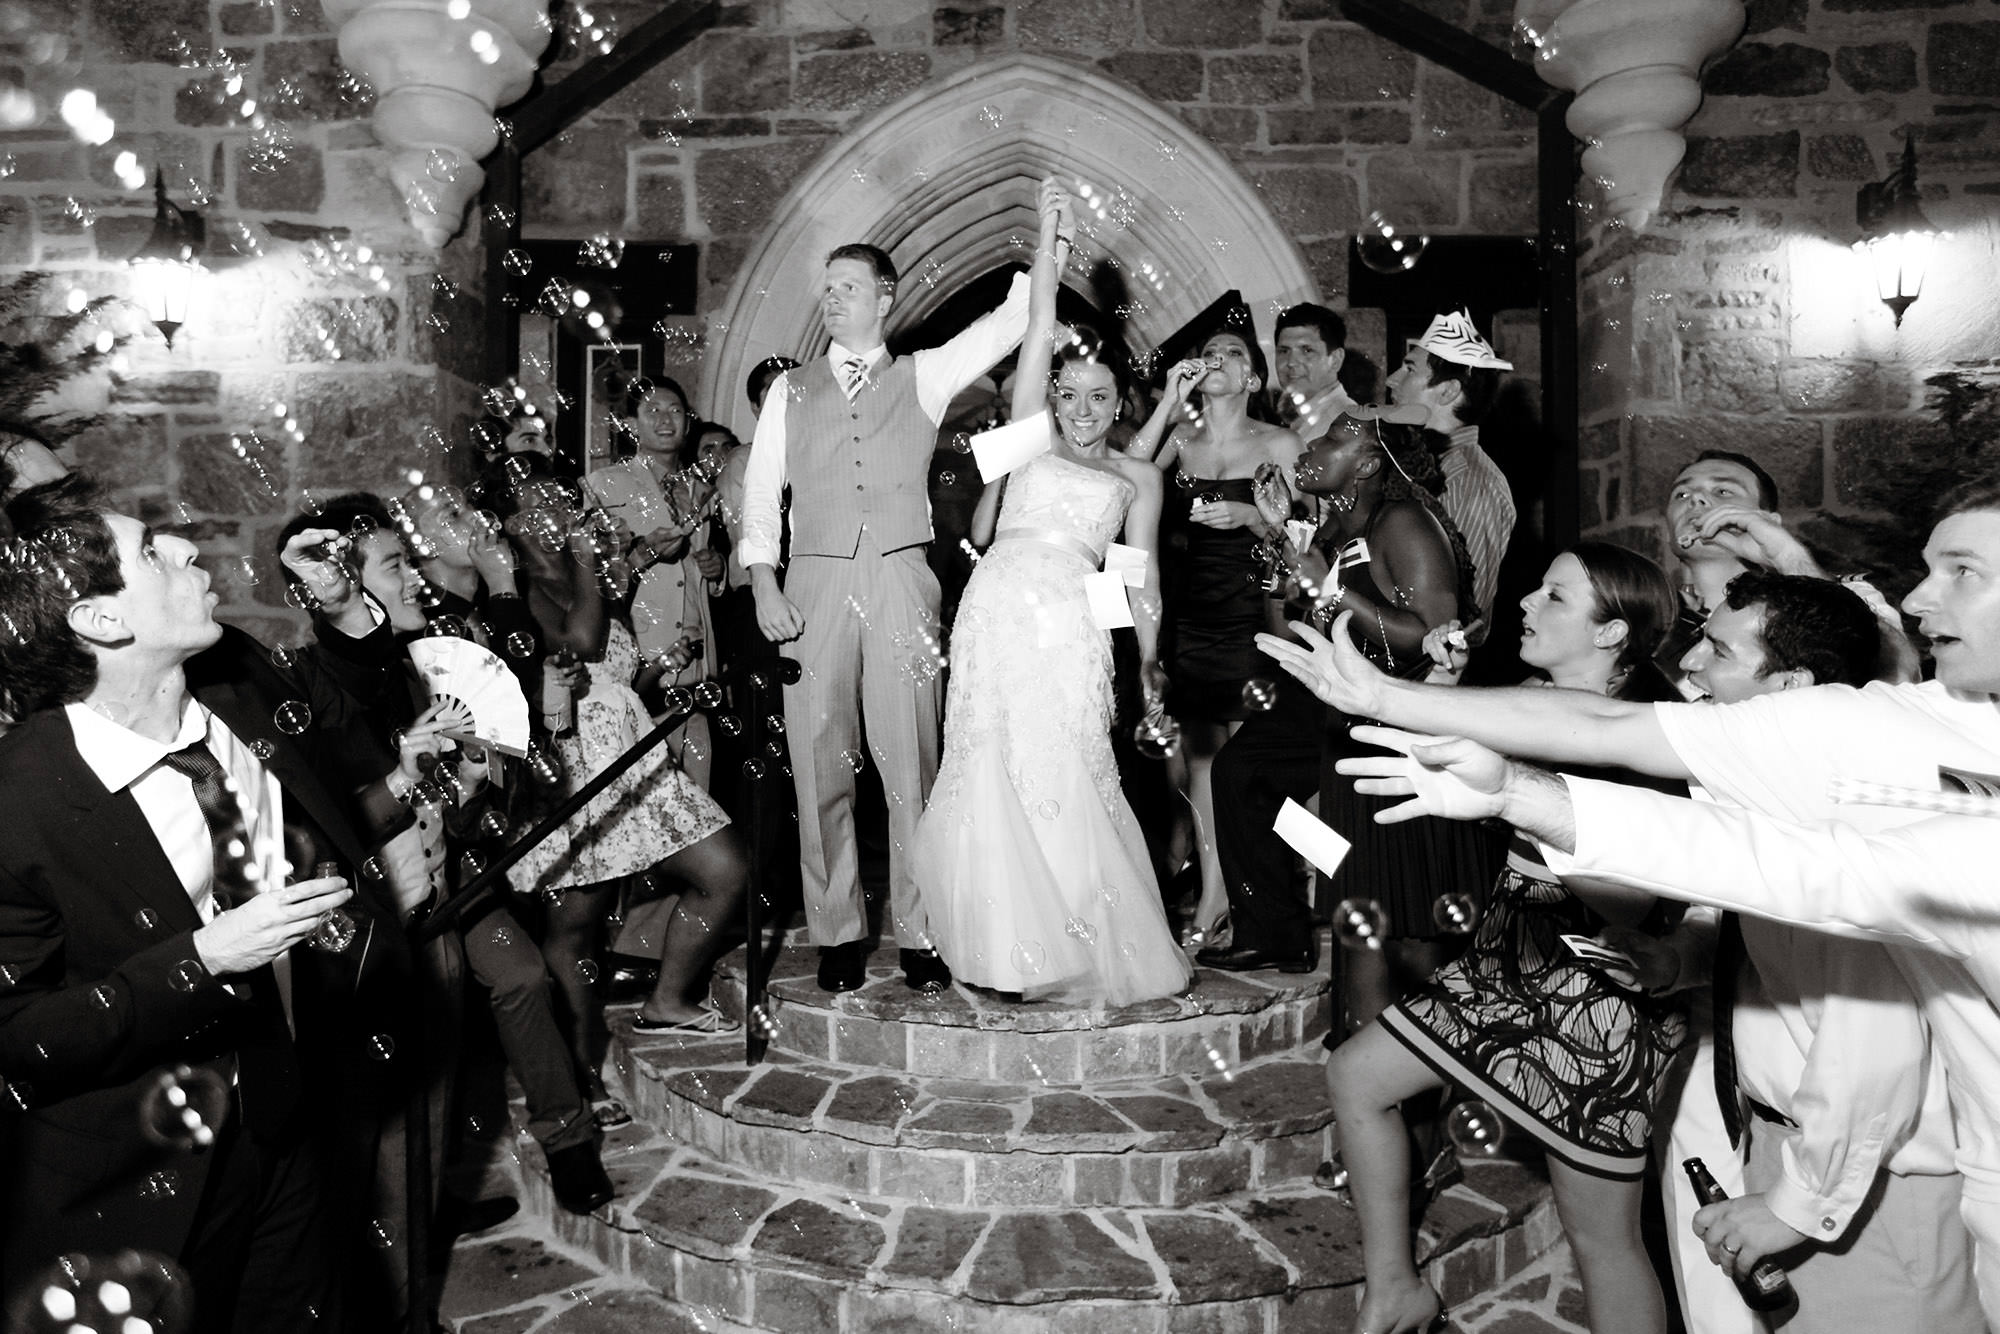 Cloisters Castle Wedding  I  The bride and groom cheer during their sendoff following the wedding reception.